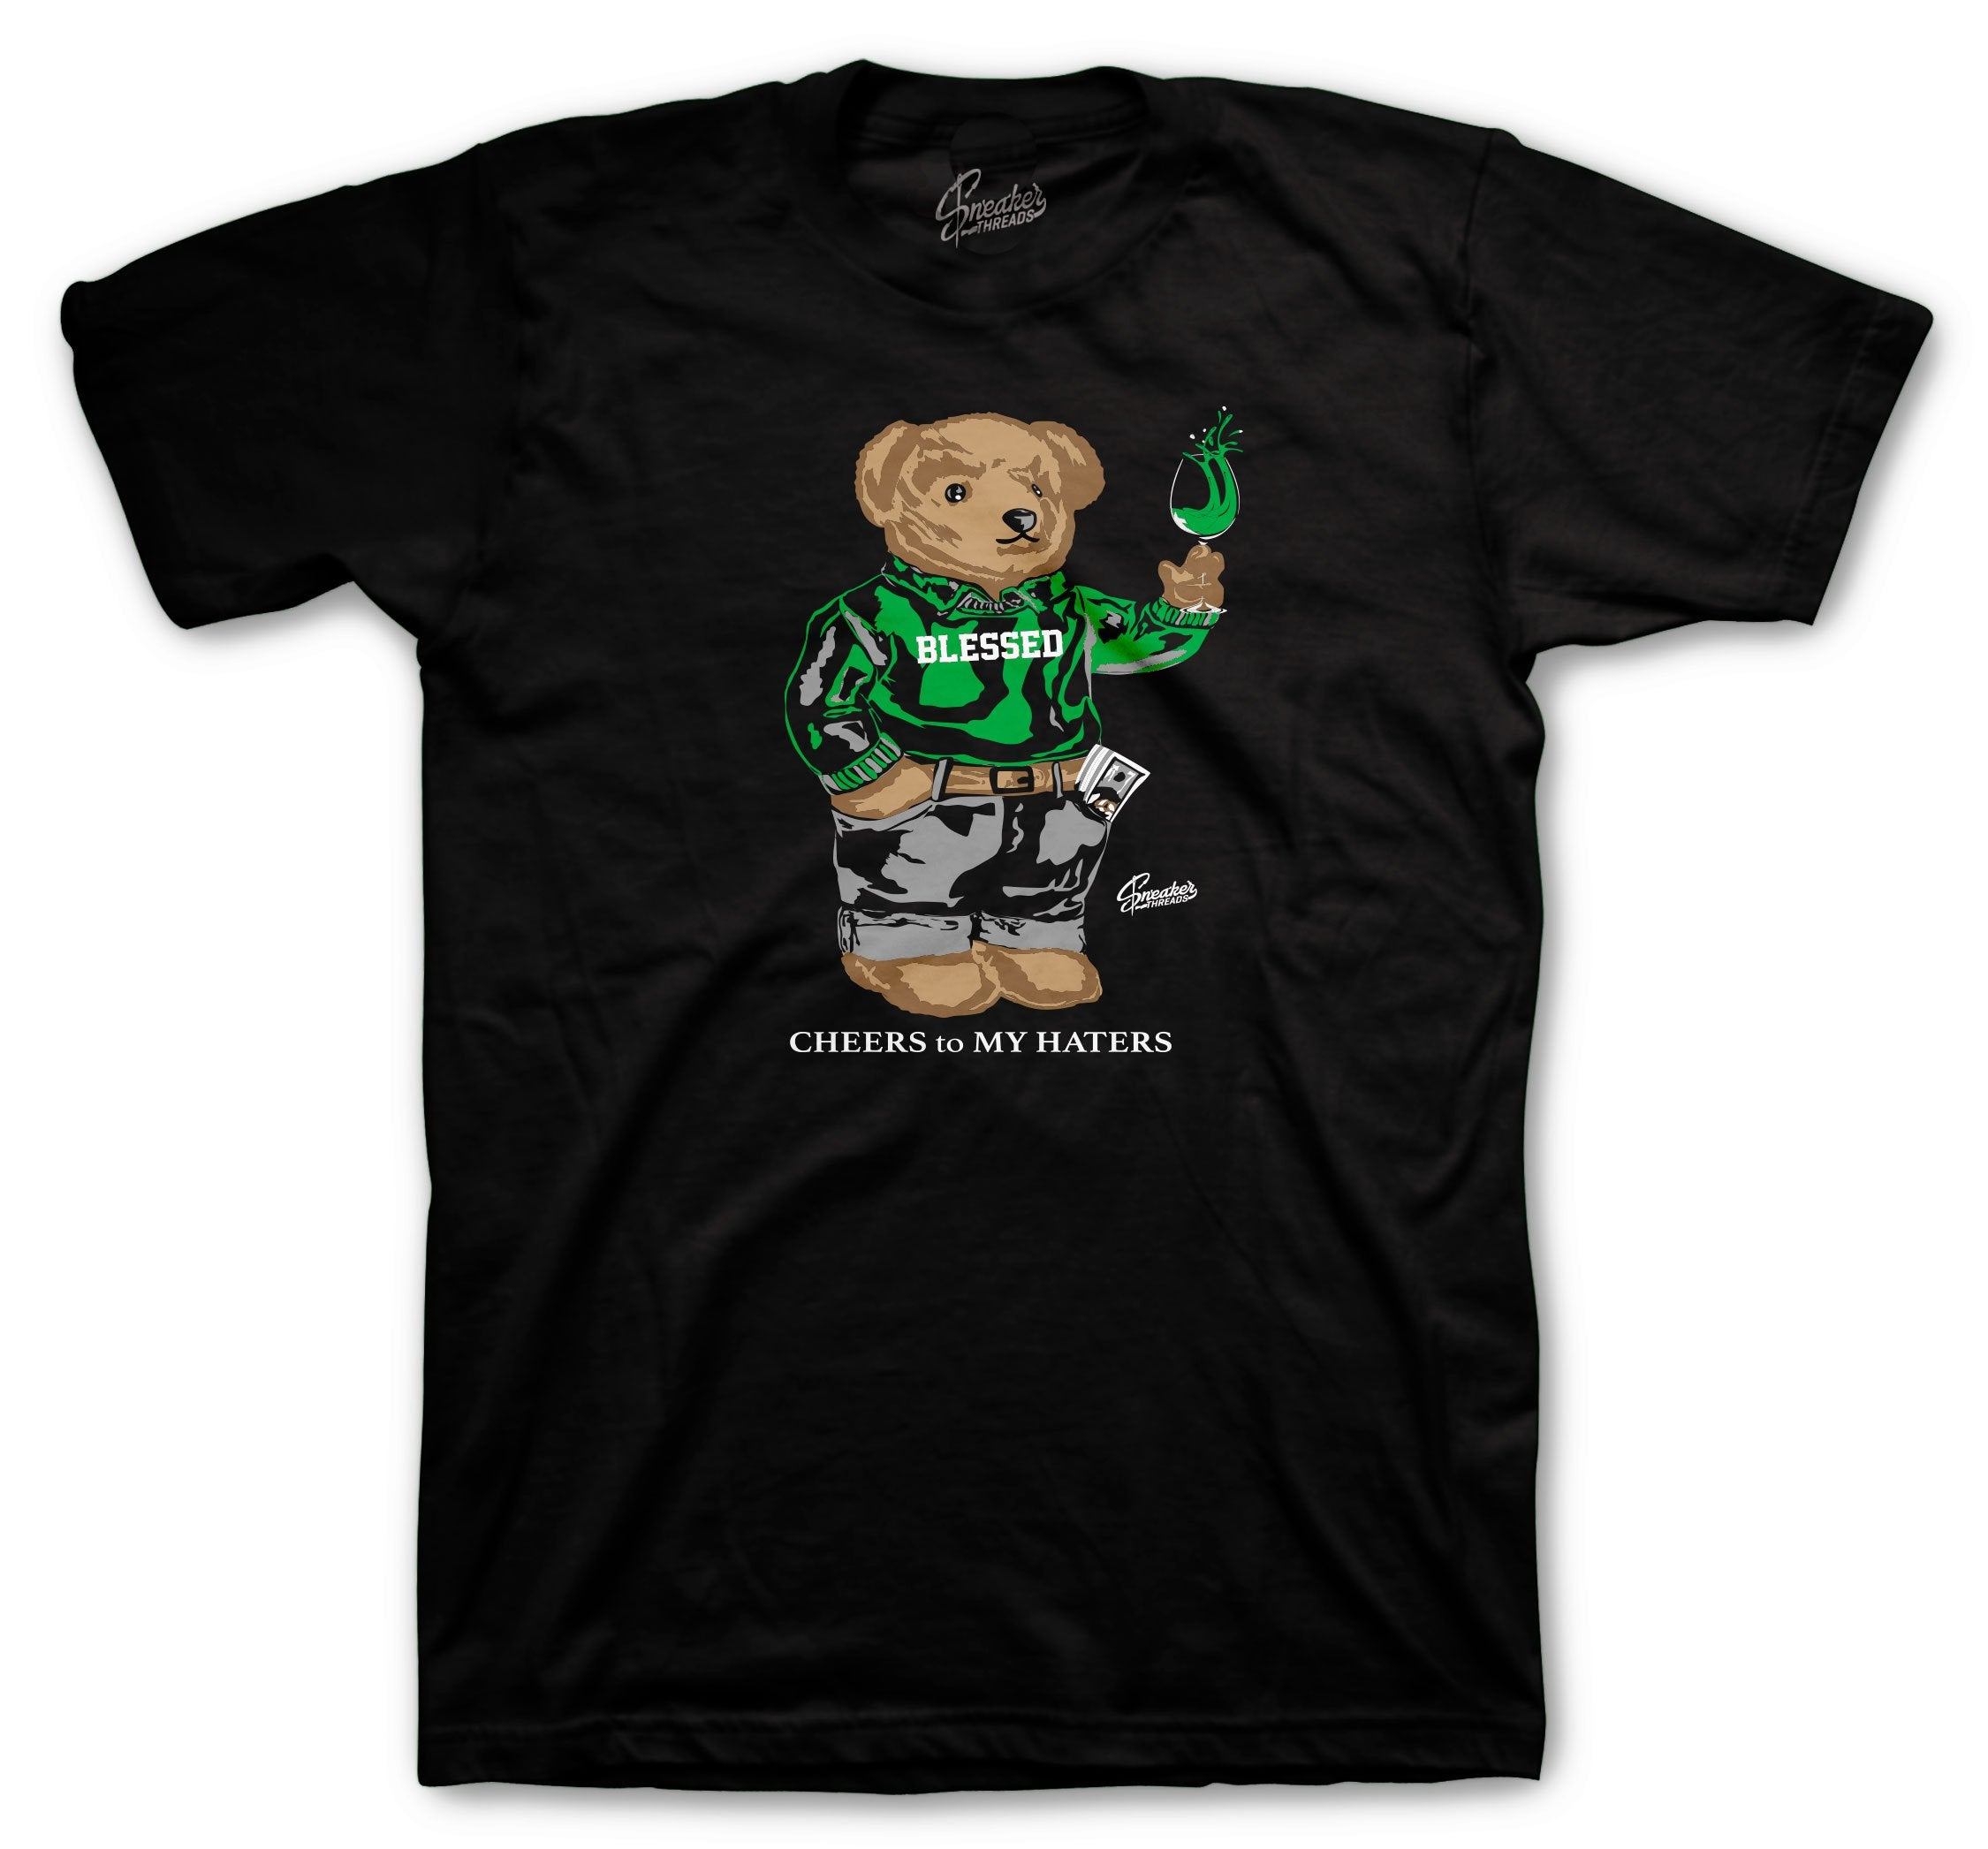 Pine Green retro 1s have matching t shirt collection for men